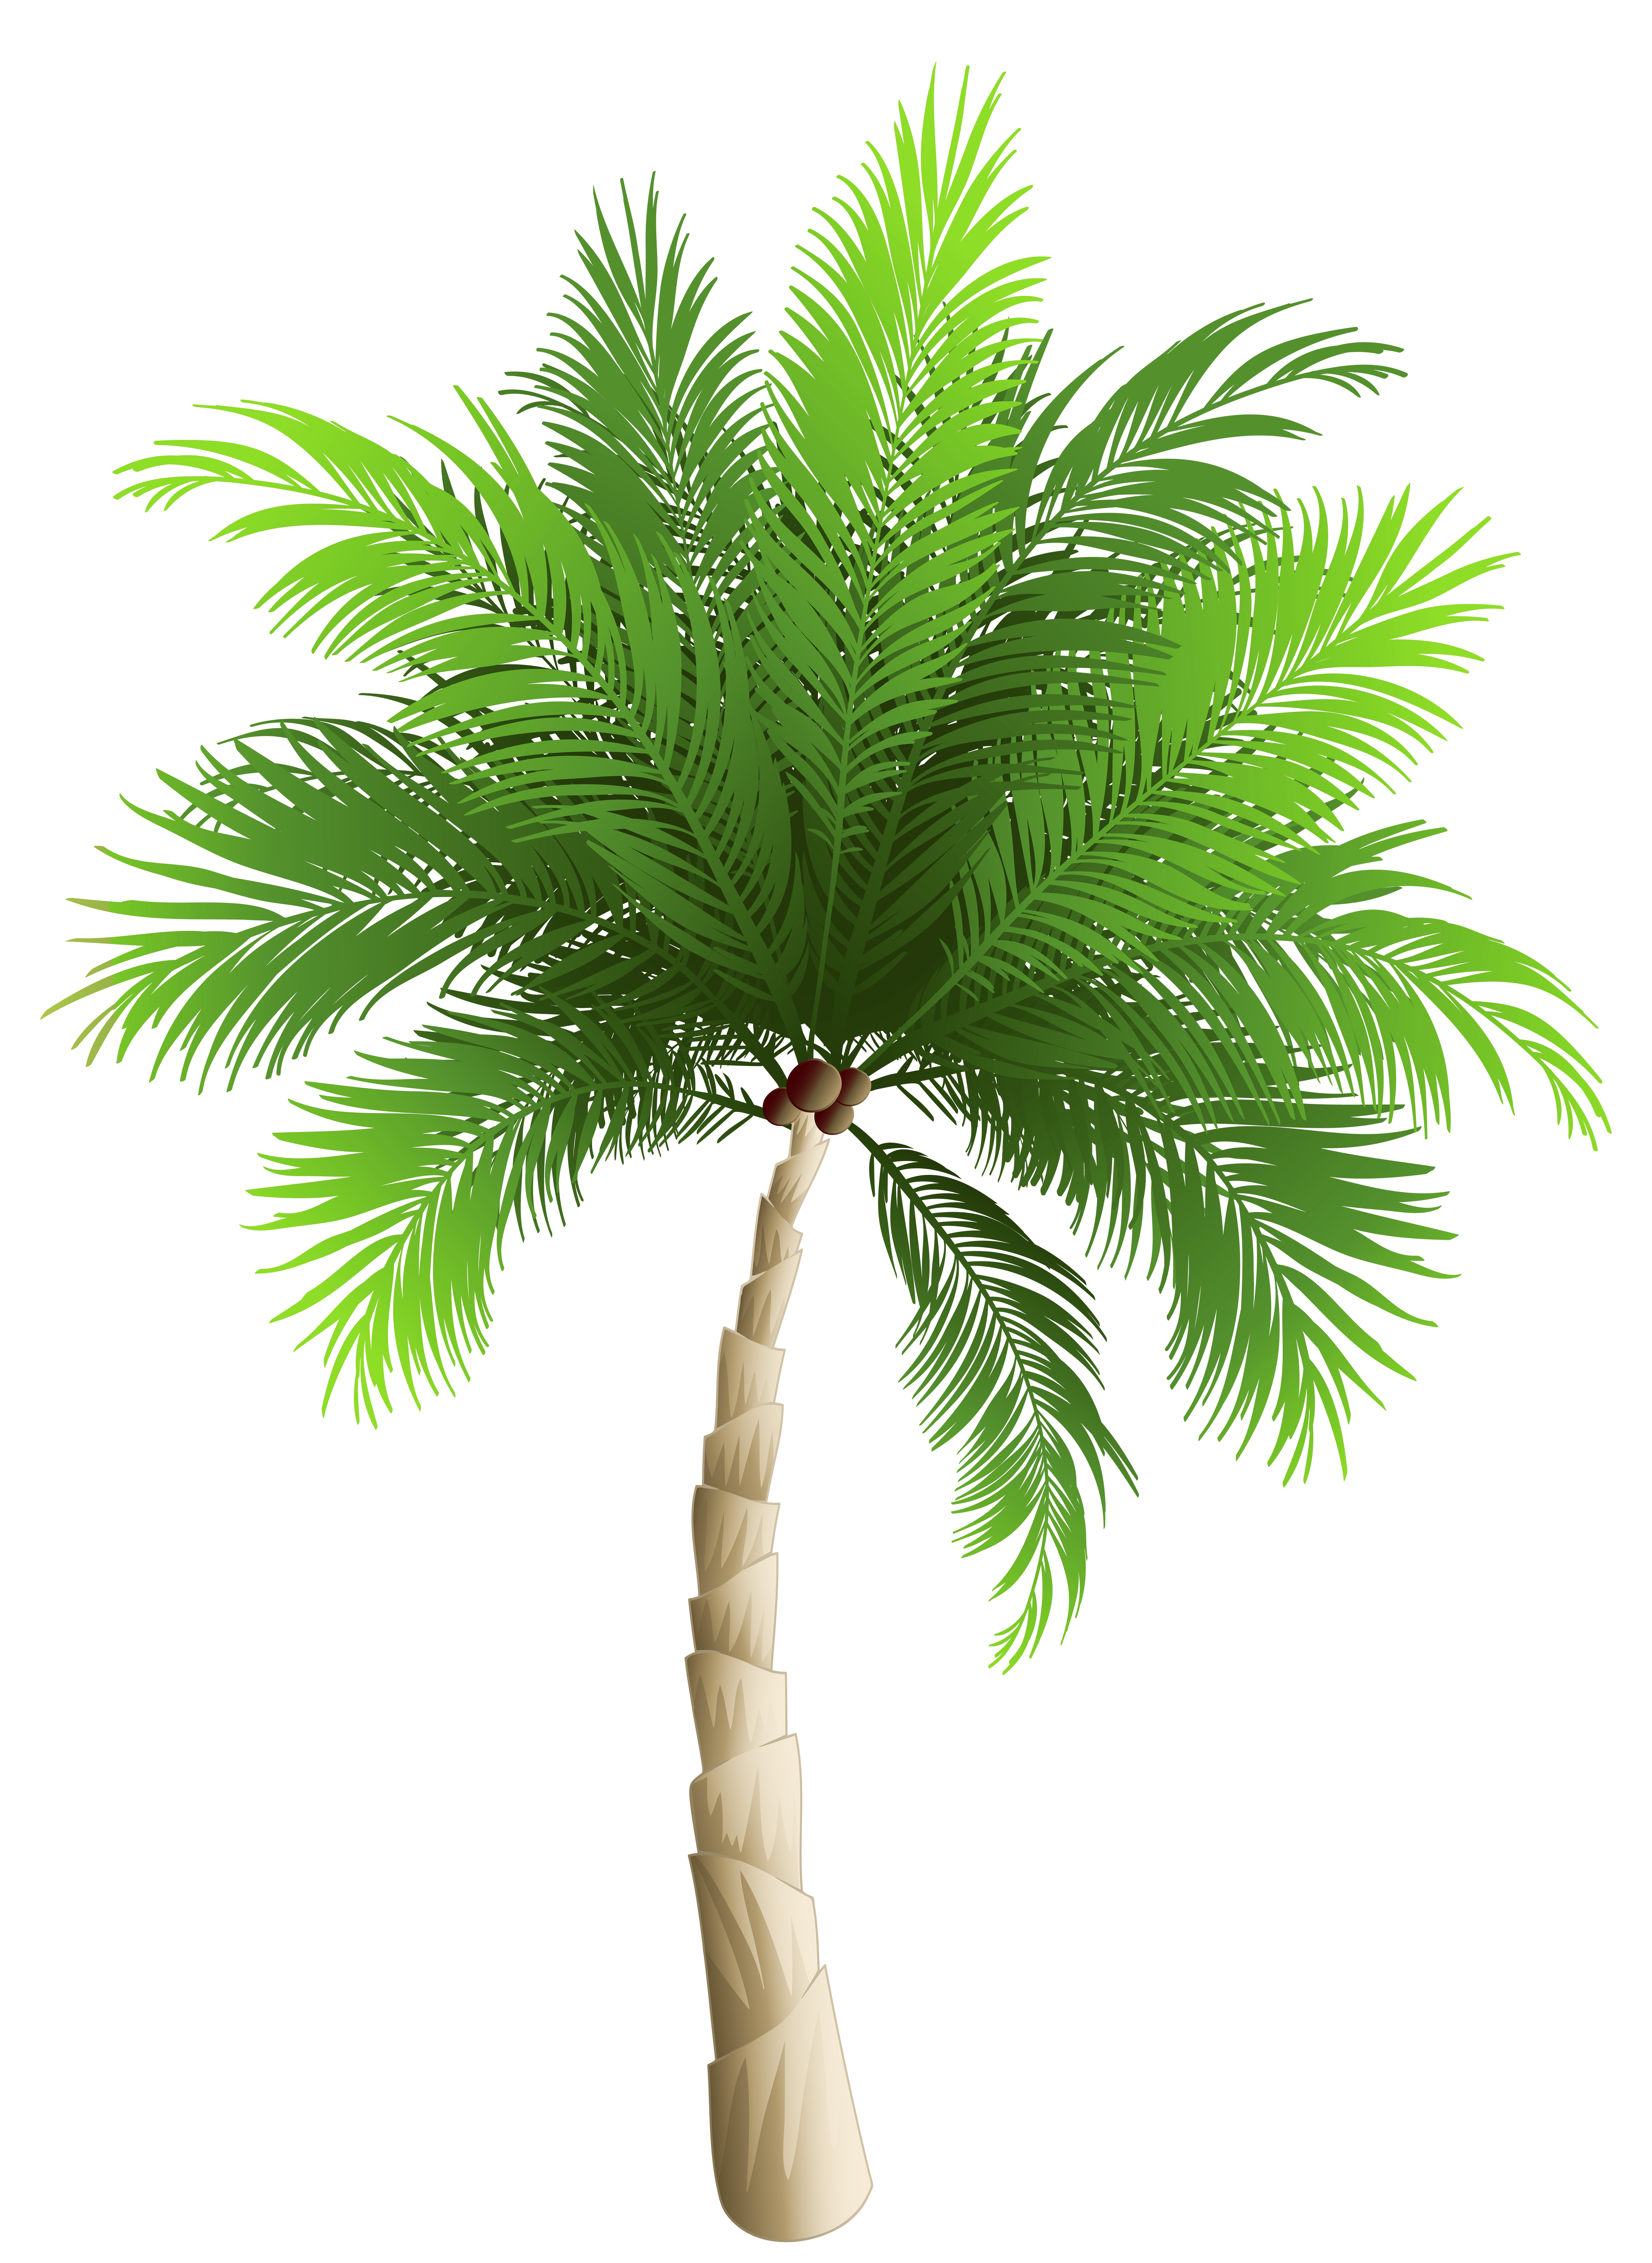 Mountain tree sun clipart vector black and white stock Palm Tree PNG Clipart Image | SANDRO | Pinterest | Clipart images ... vector black and white stock